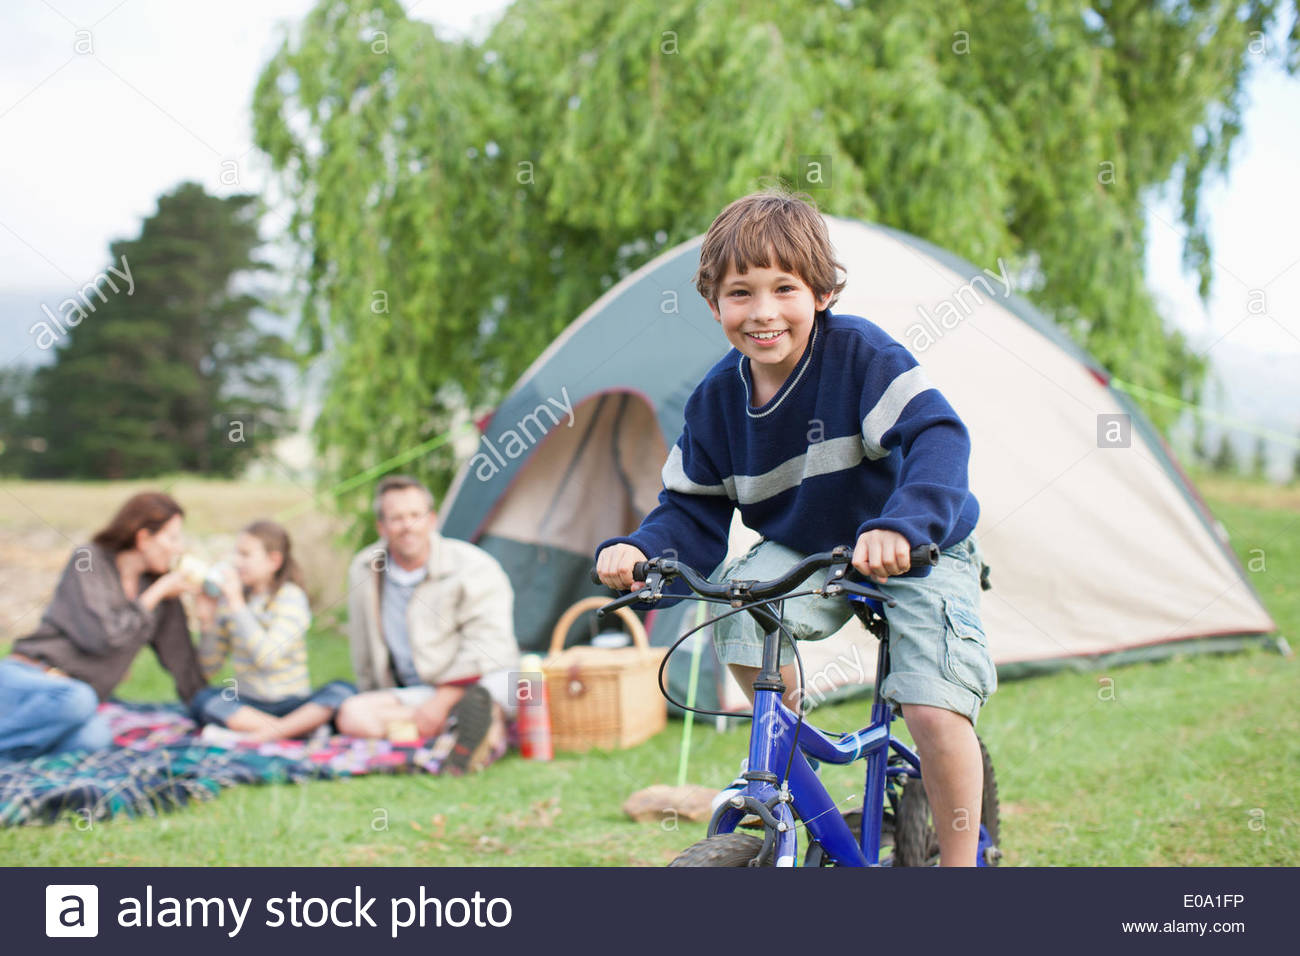 boy on bicycle while on family camping trip stock photo 69062218